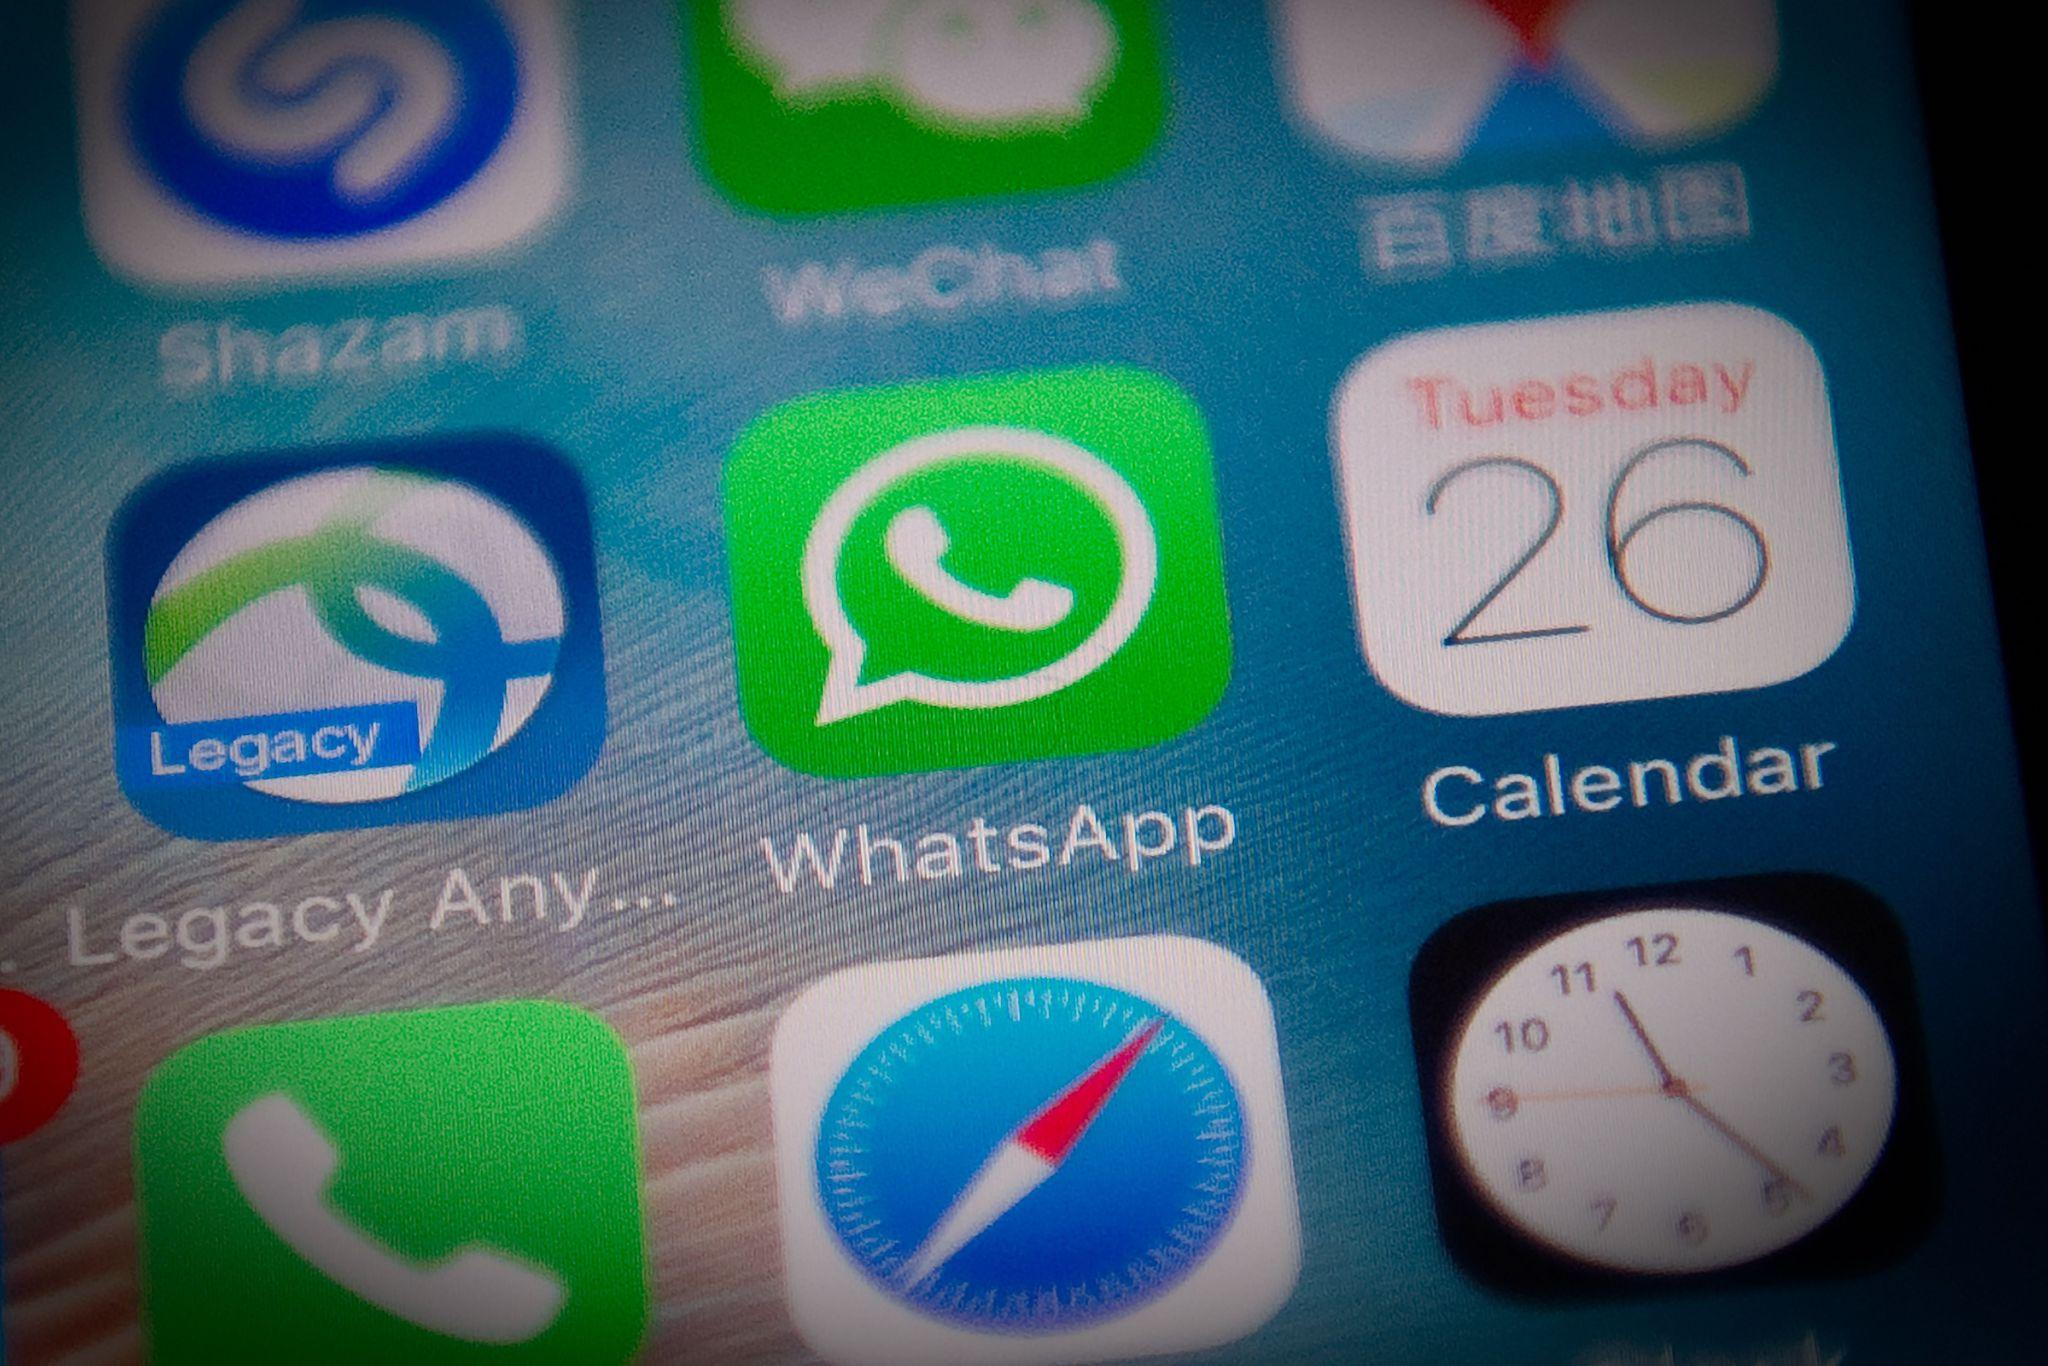 WhatsApp update: Users told to download latest version over